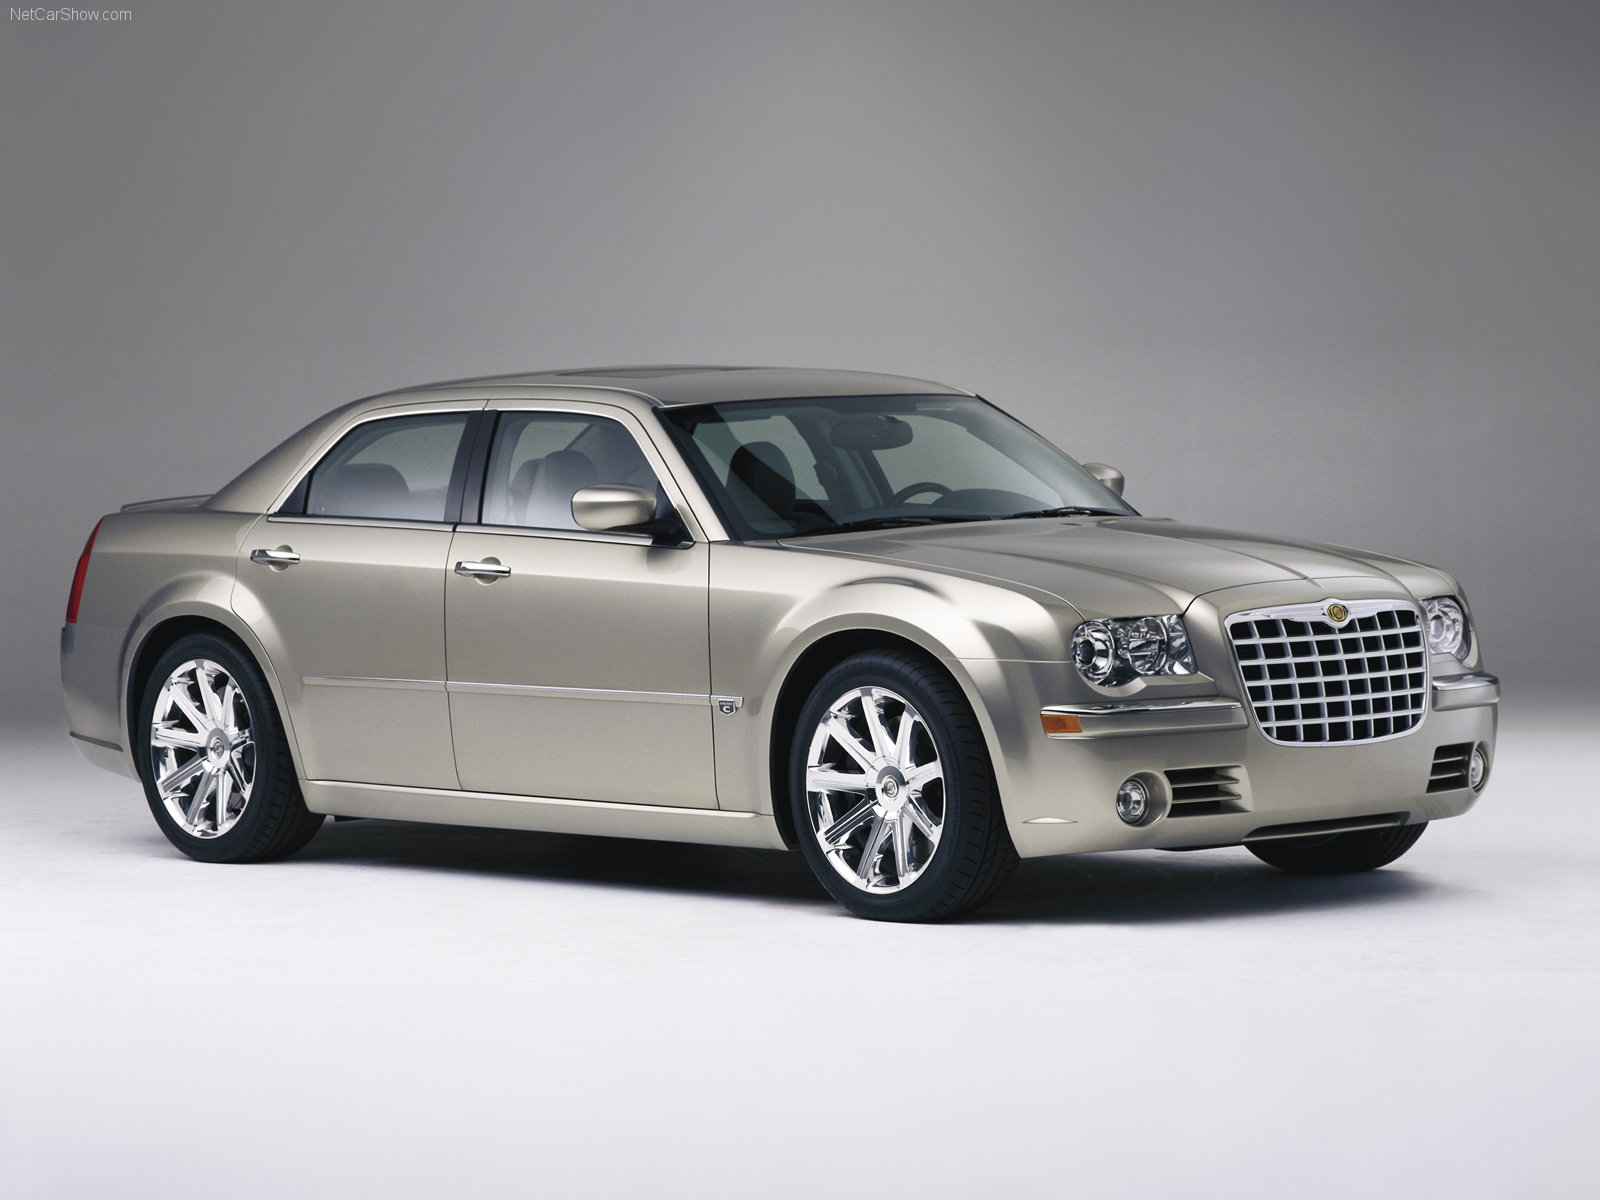 Chrysler-300C_Concept_2003_1600x1200_wallpaper_09